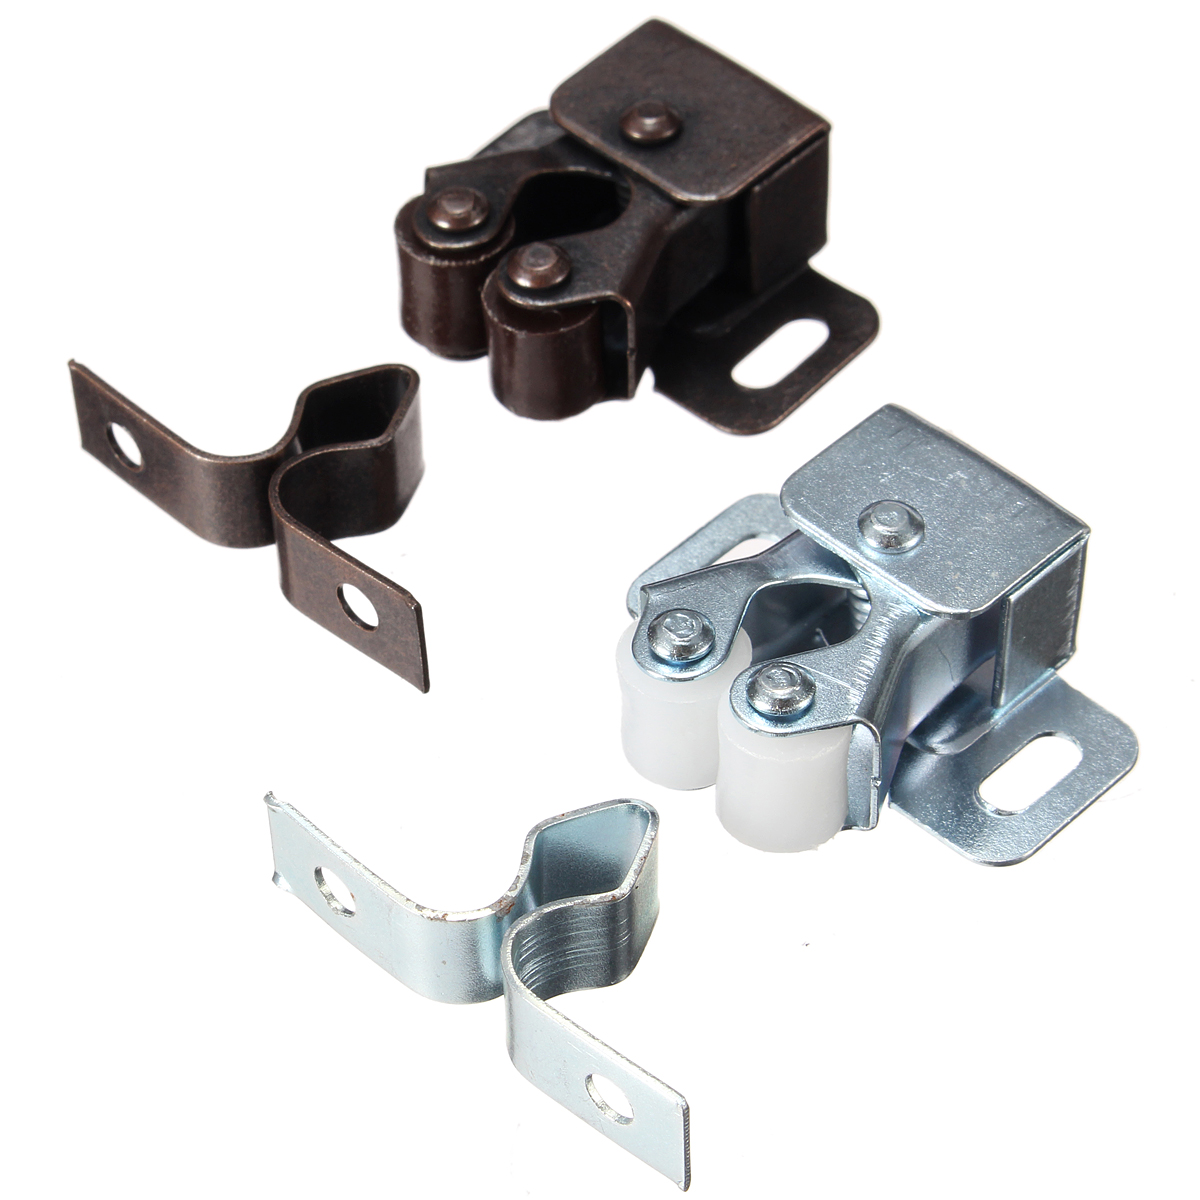 Double roller catch cupboard cabinet door furniture latch